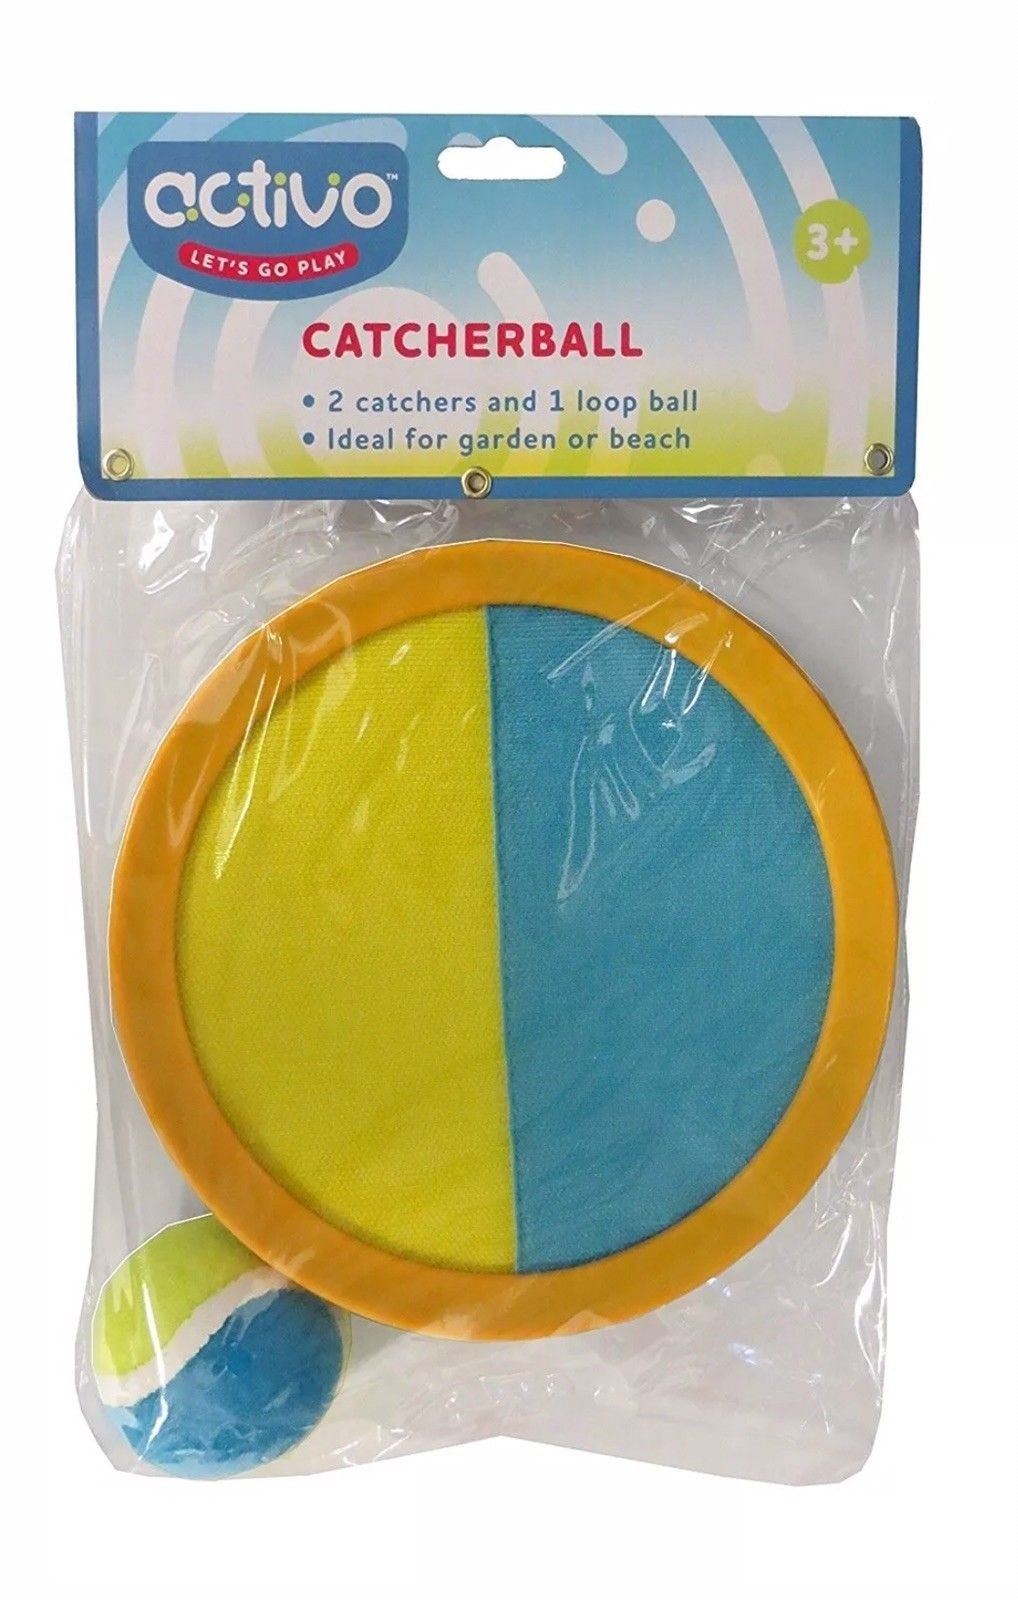 Catcherball Game 8in